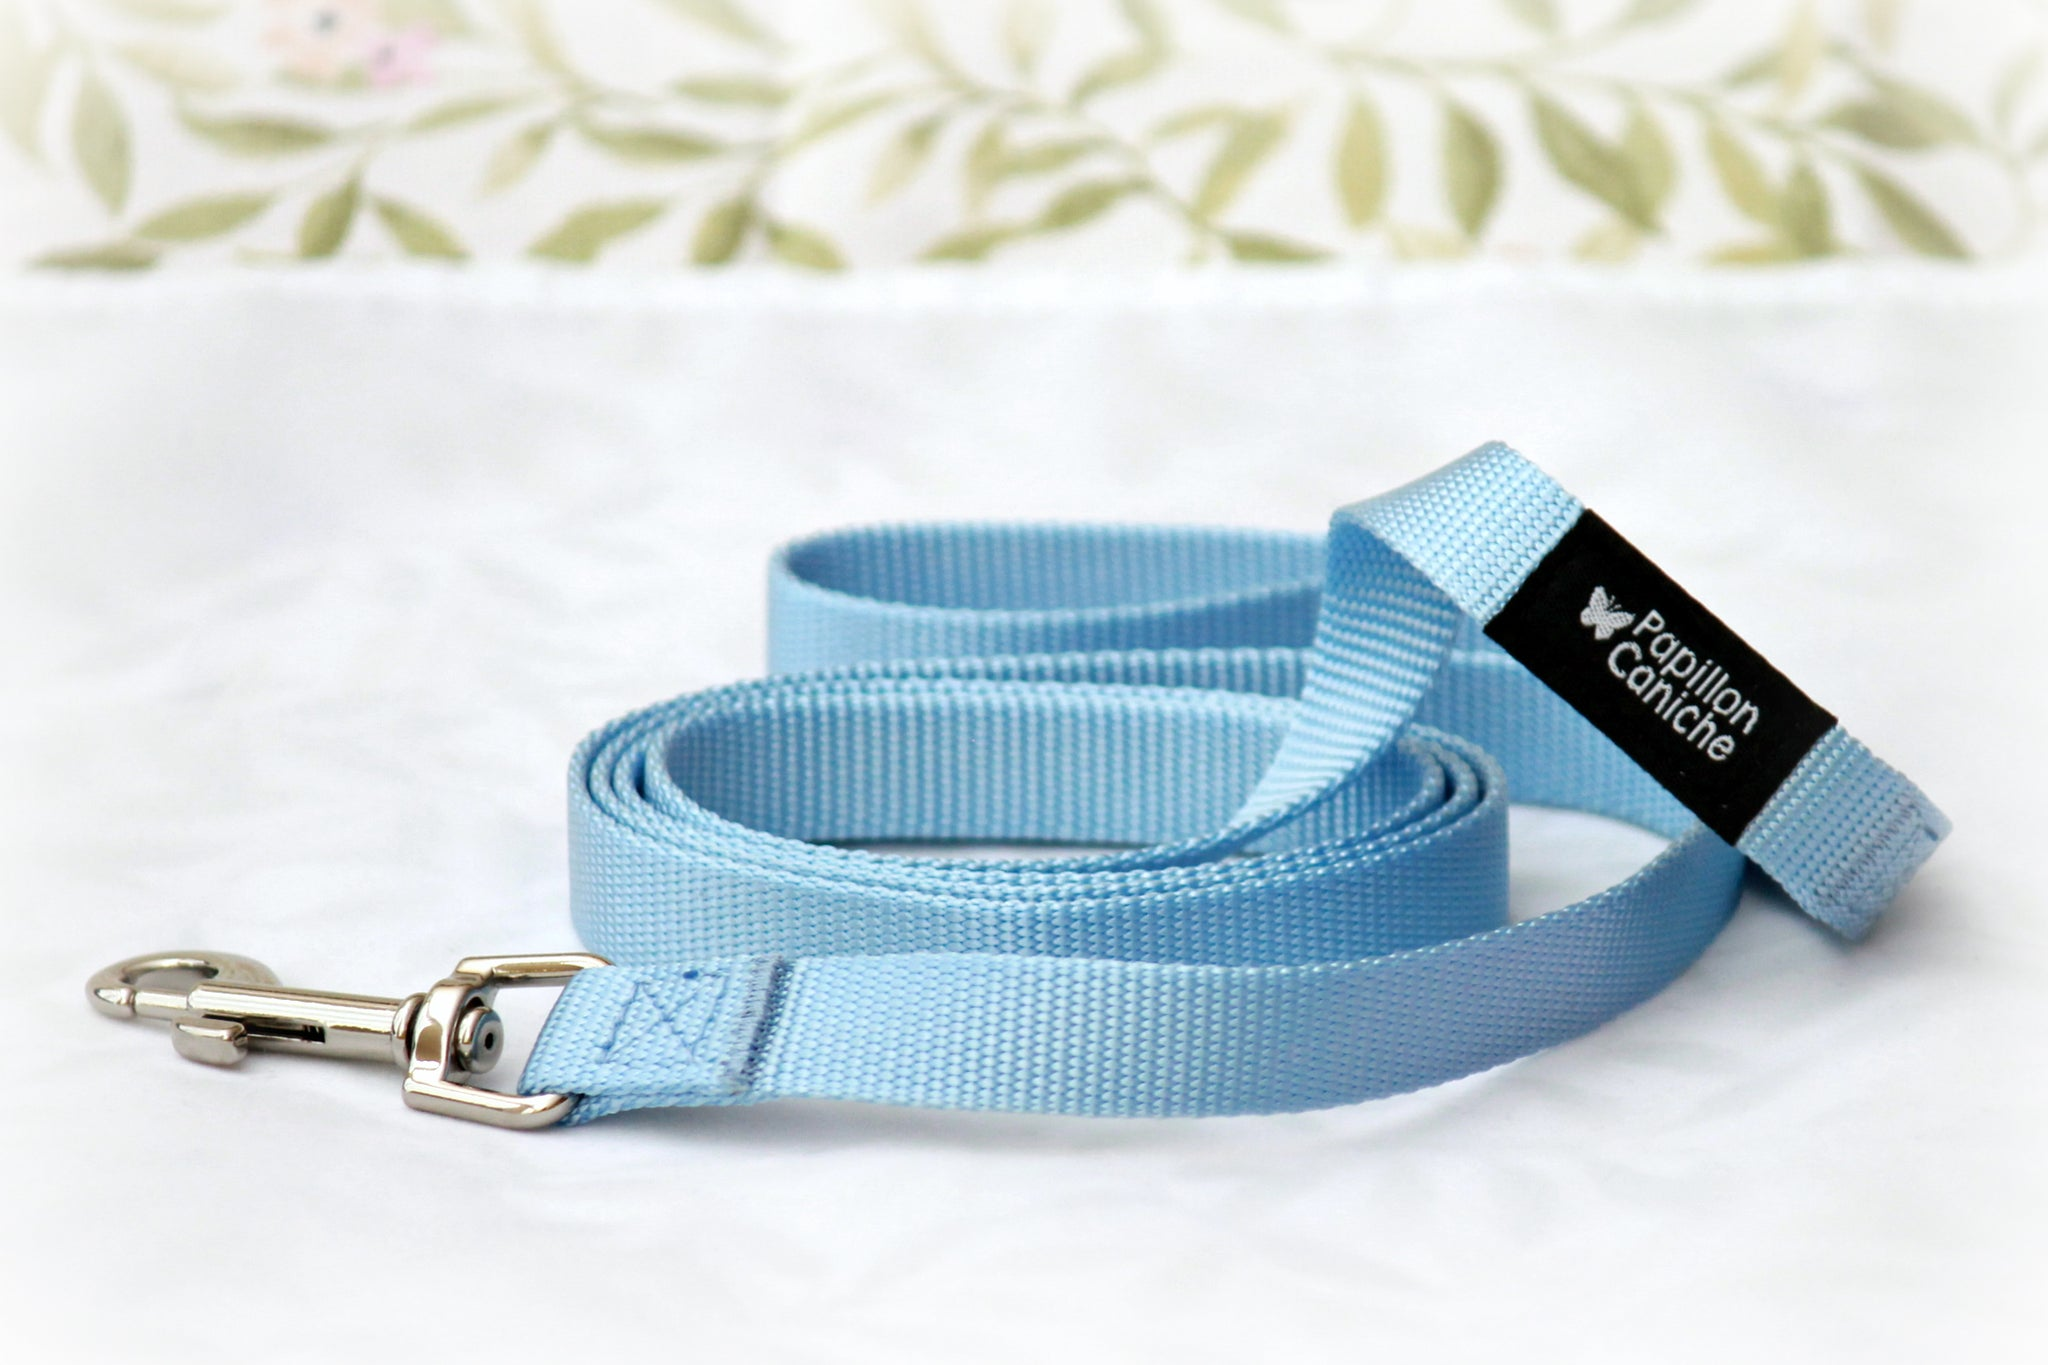 Pack of 10 Skye Blue Nylon Dog Leash by Papillon Caniche